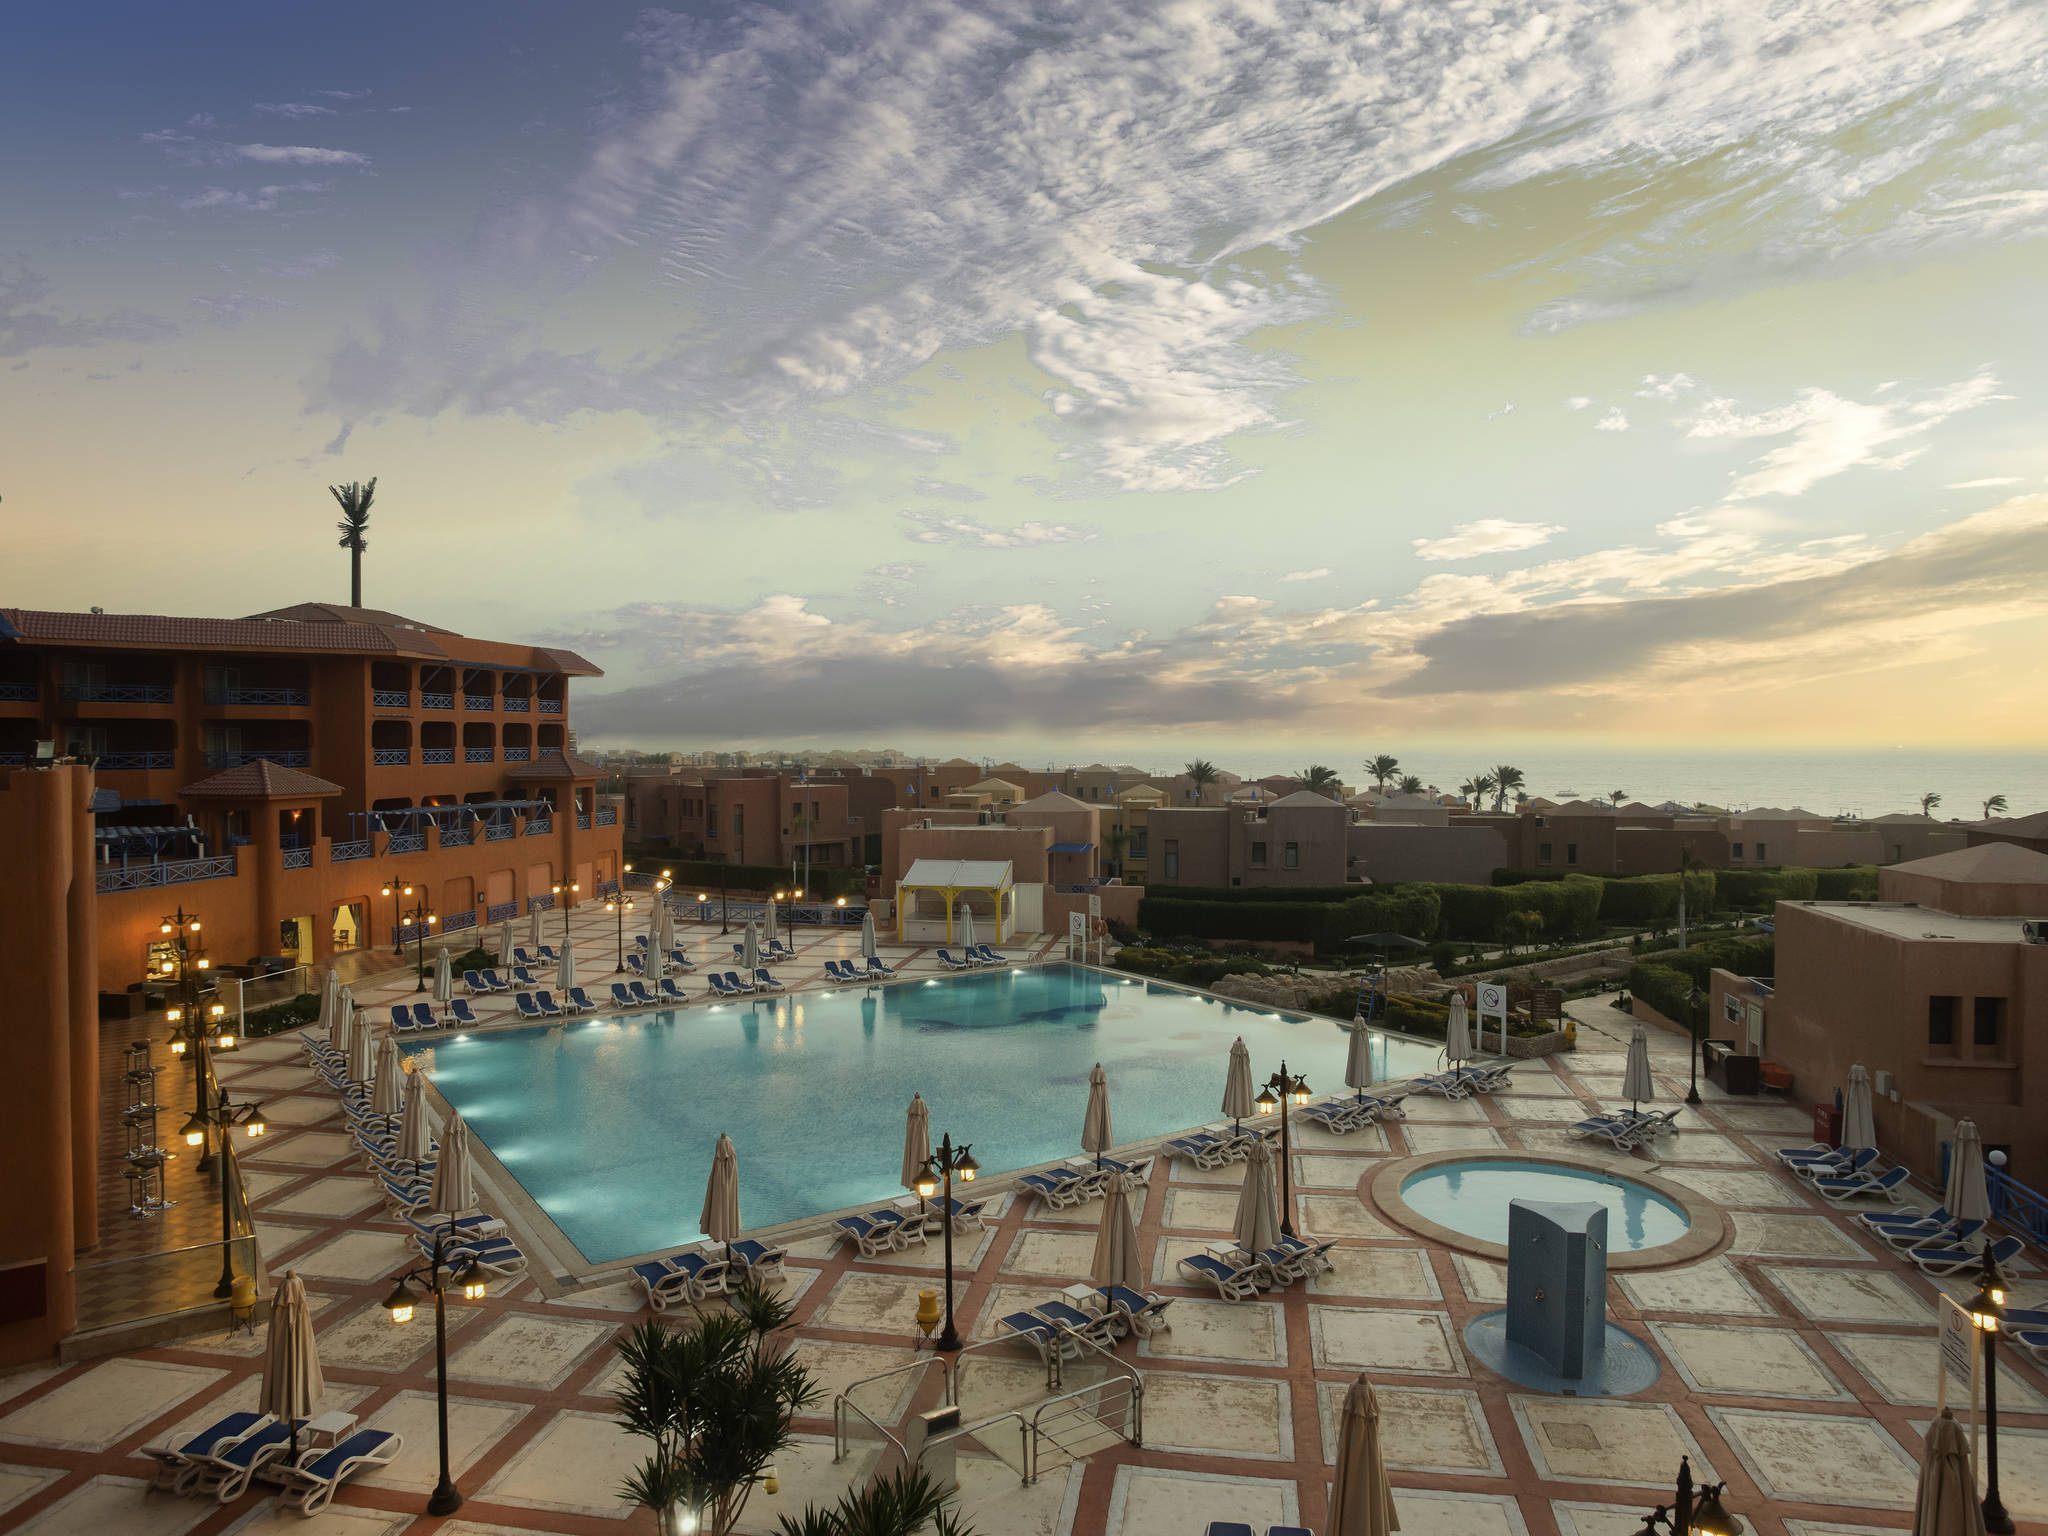 Hotel - Cancun Sokhna Managed by AccorHotels